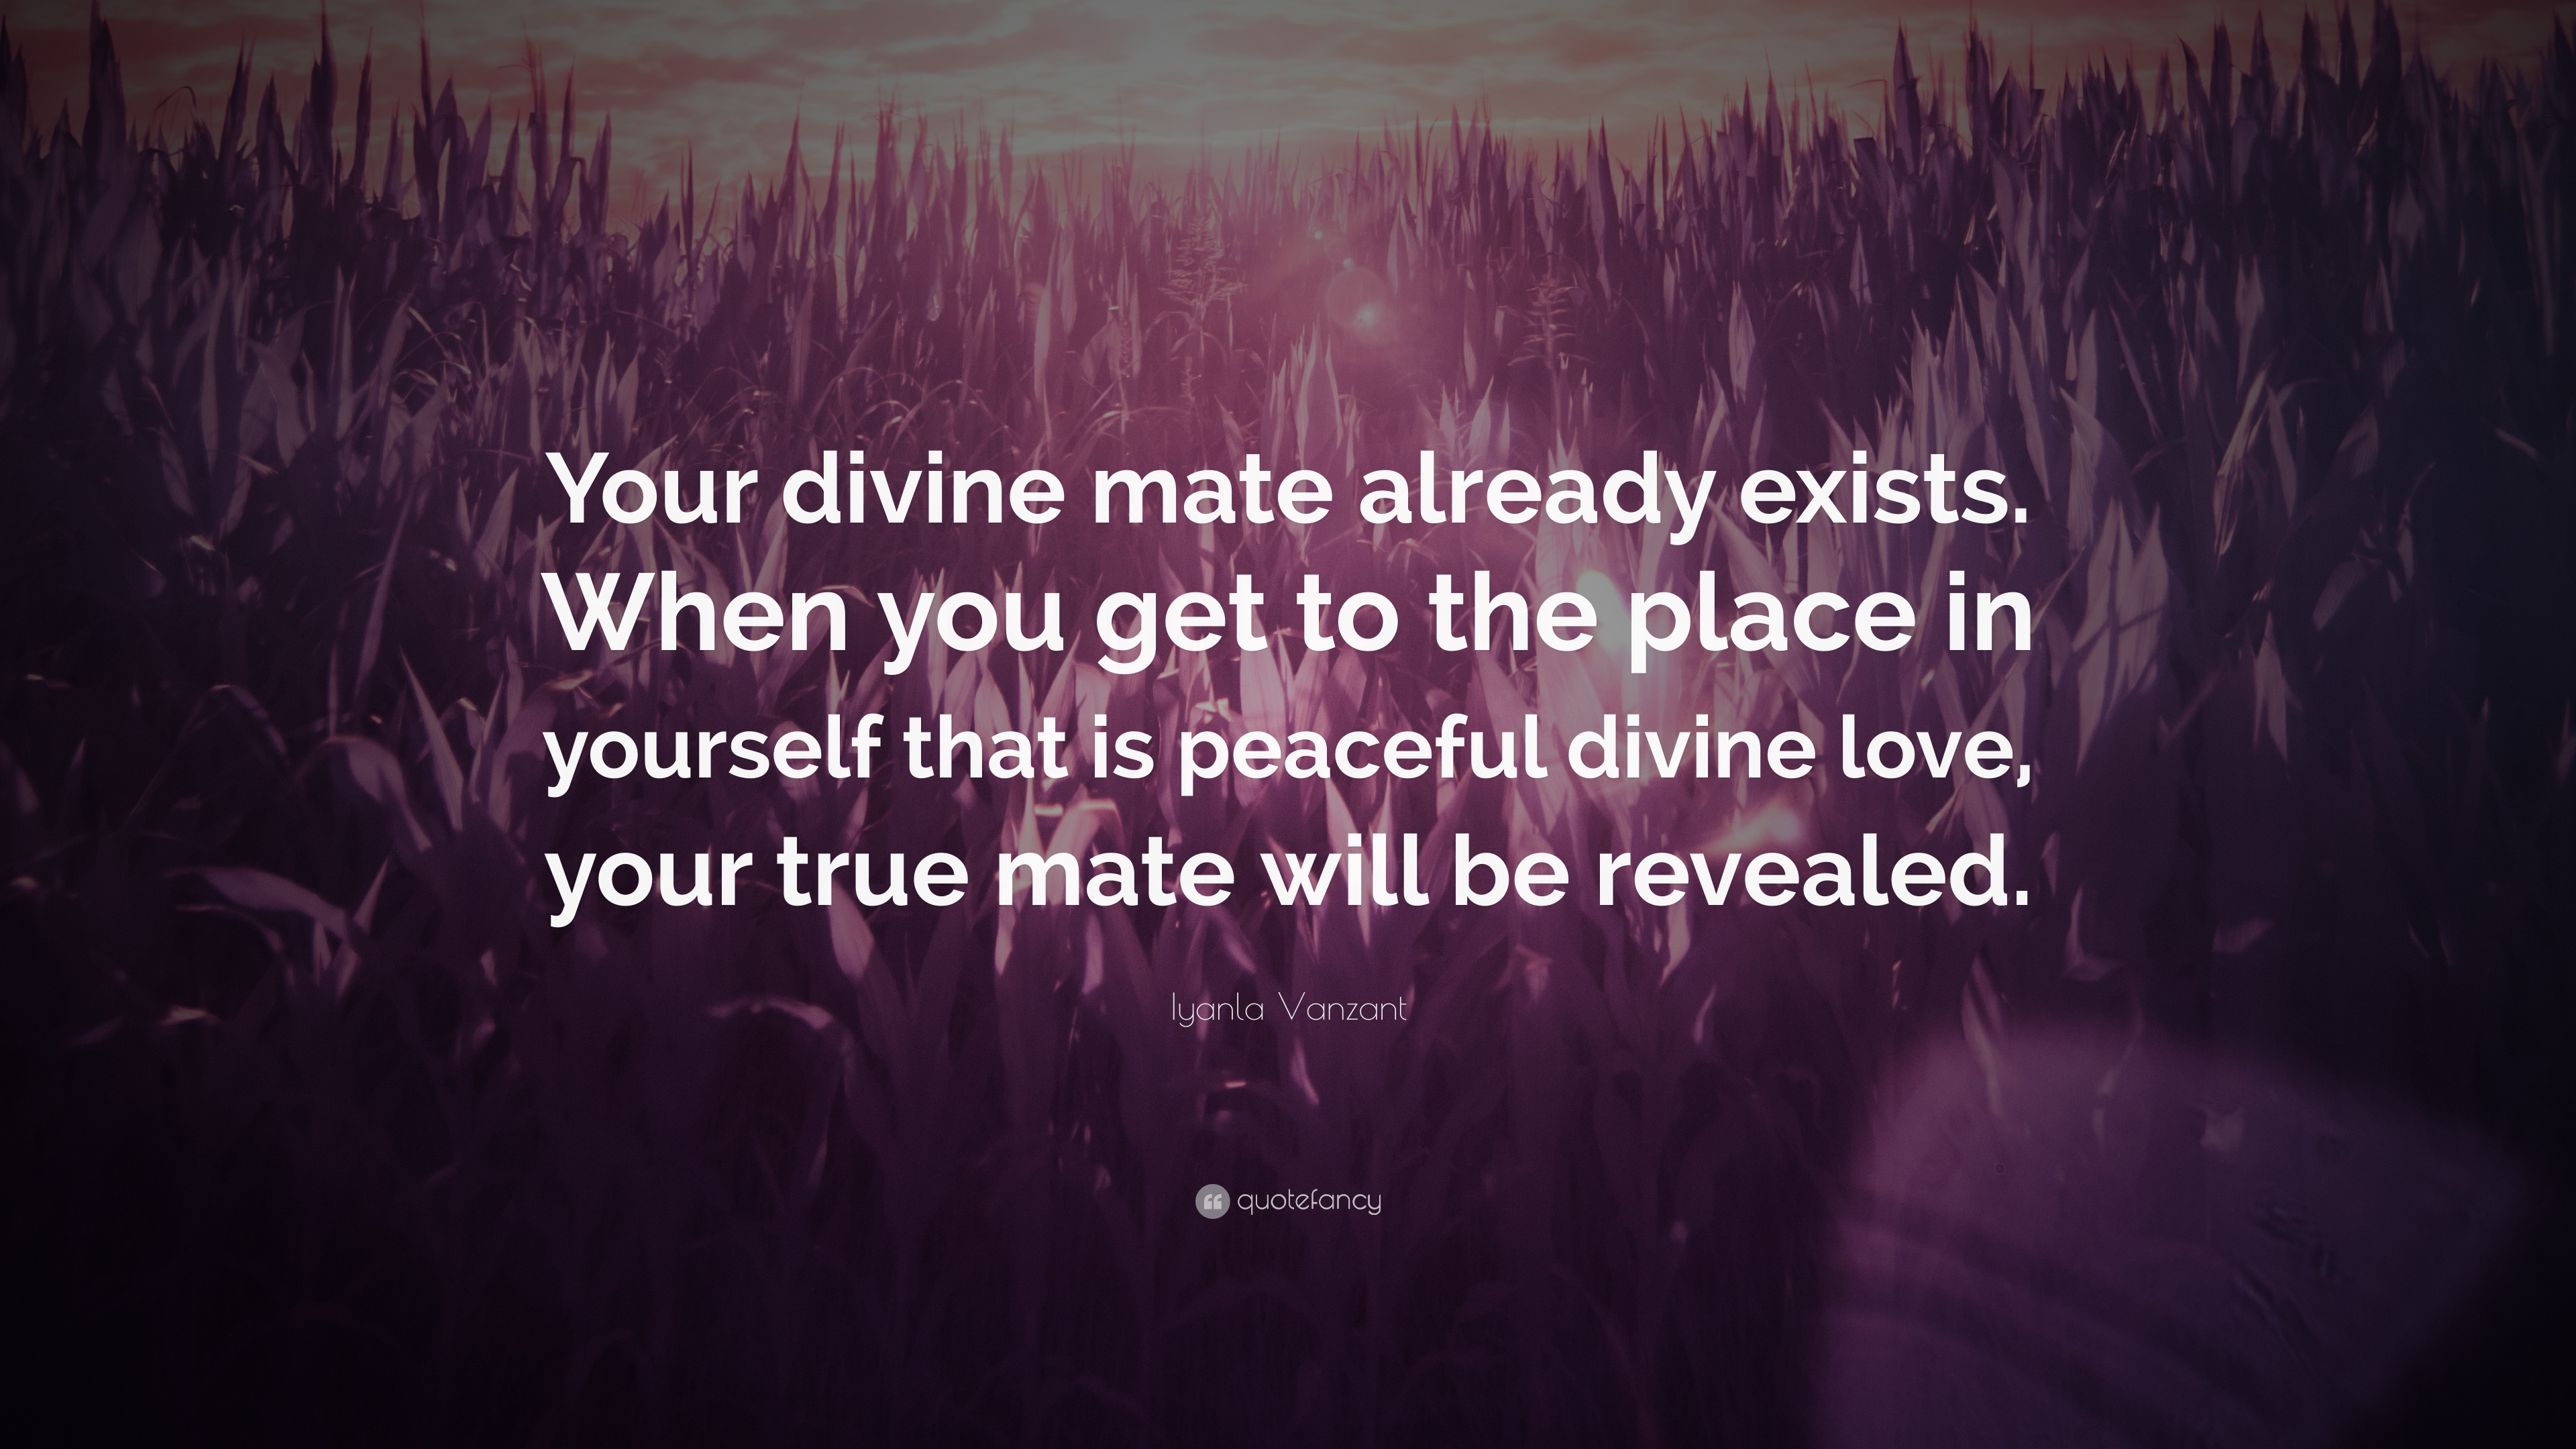 Iyanla Vanzant Quote: U201cYour Divine Mate Already Exists. When You Get To The